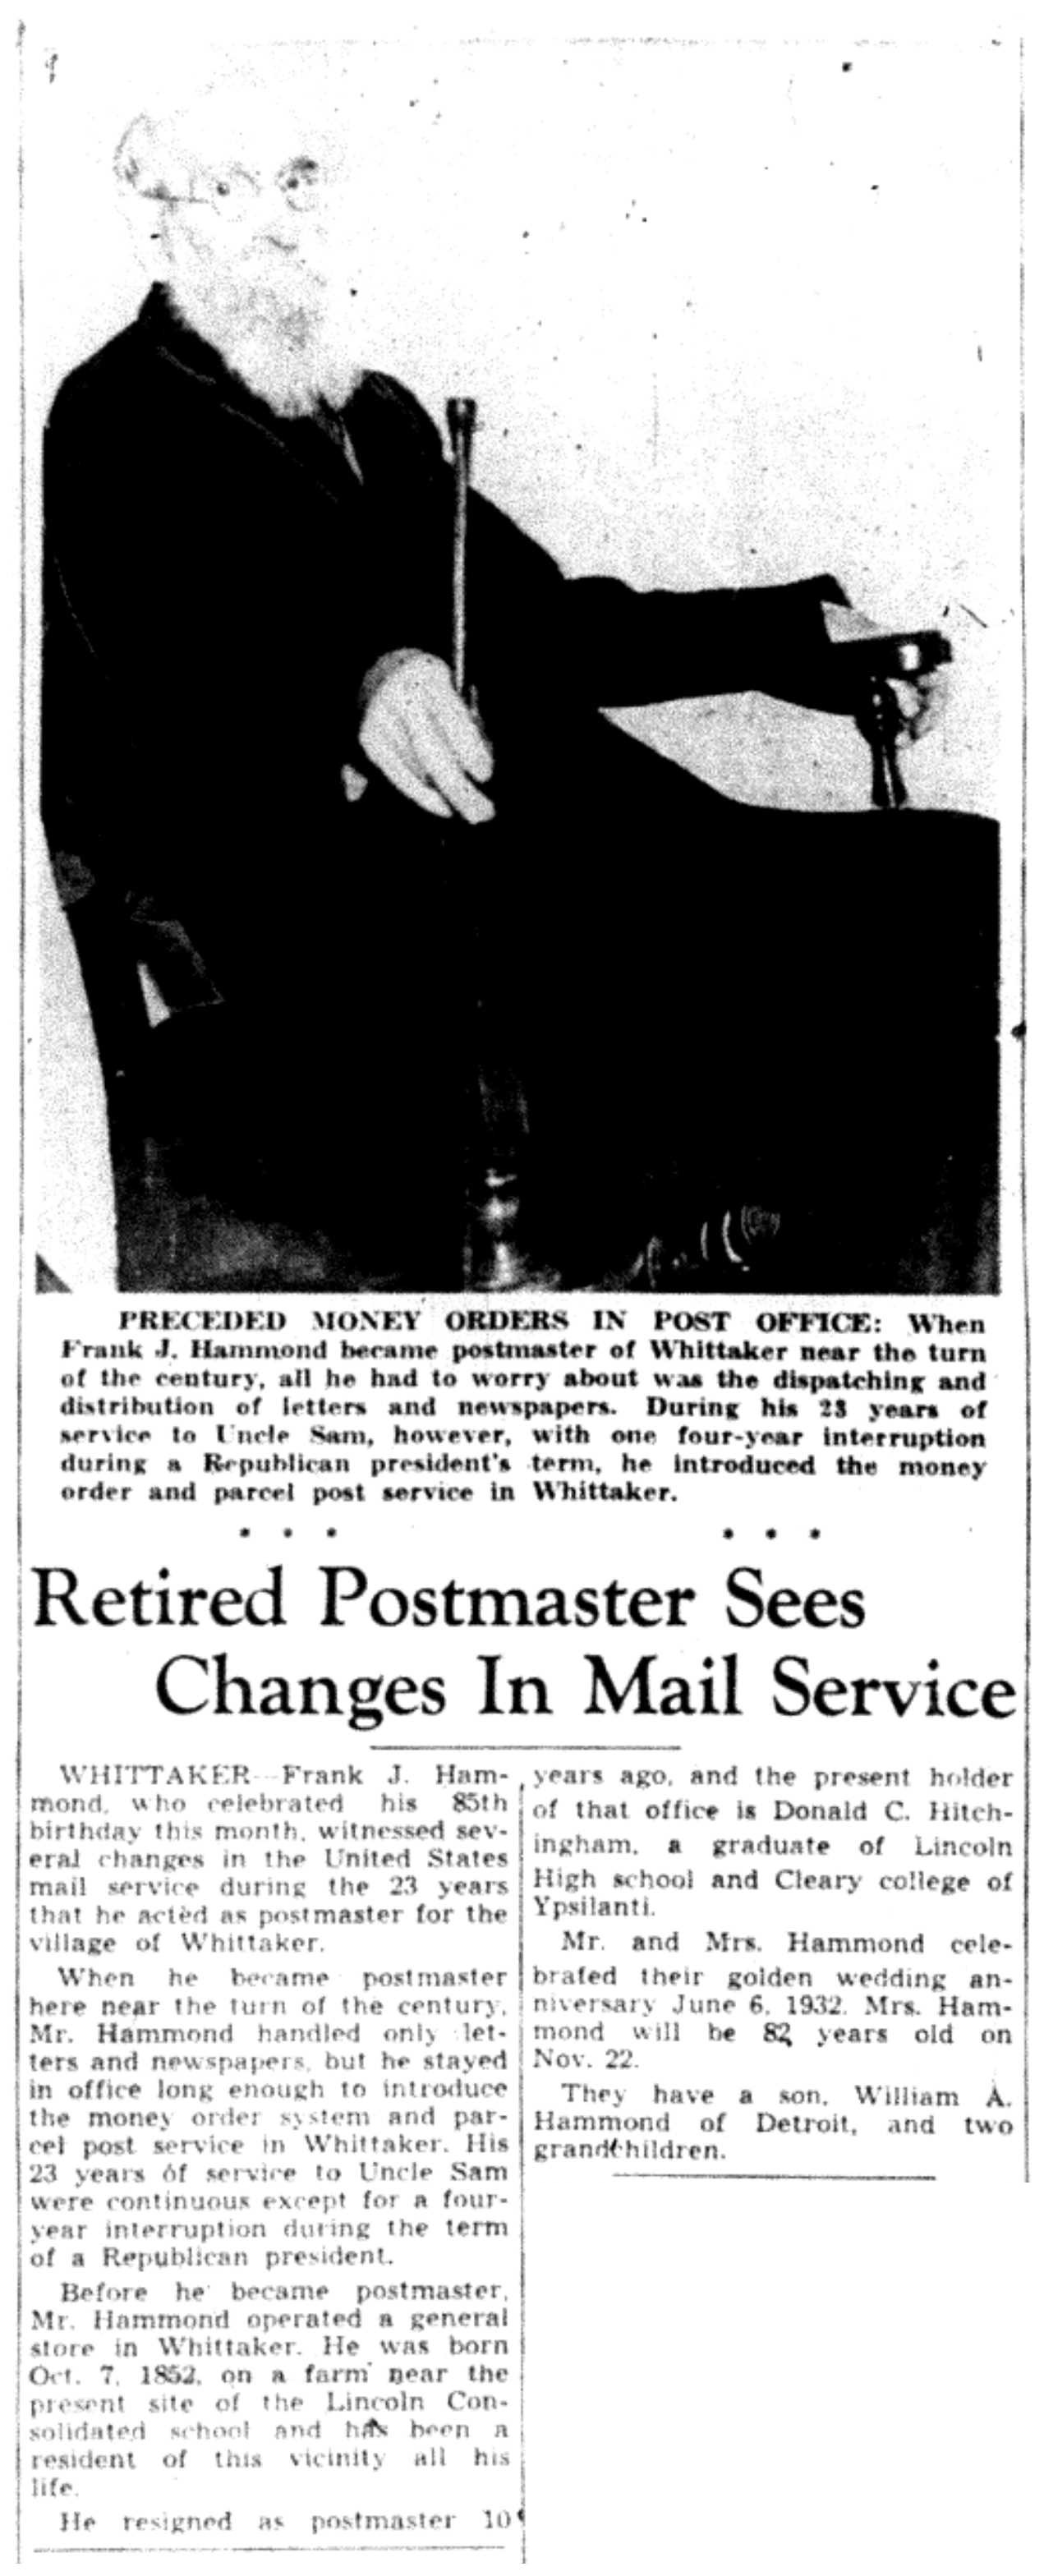 Retired Postmaster Sees Changes In Mail Service image